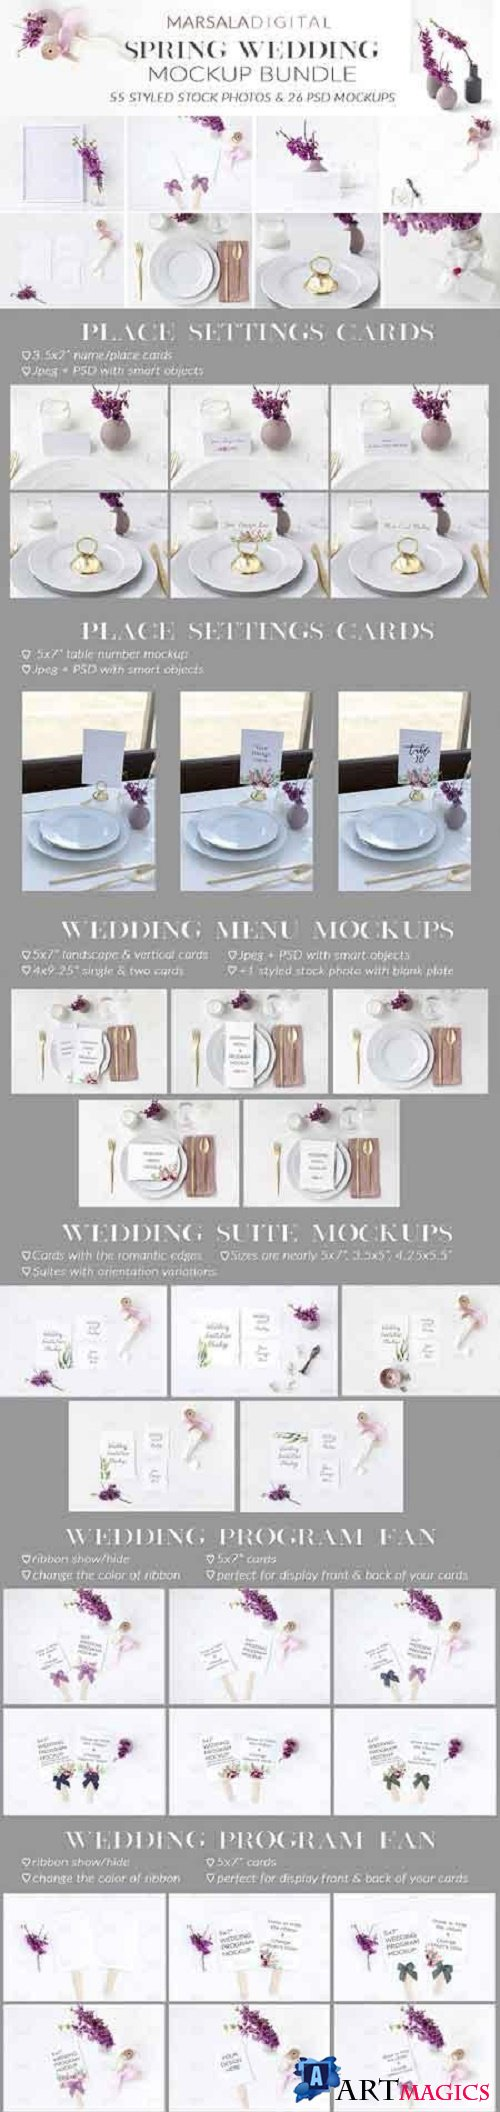 Spring Wedding Mockup Bundle 2473252